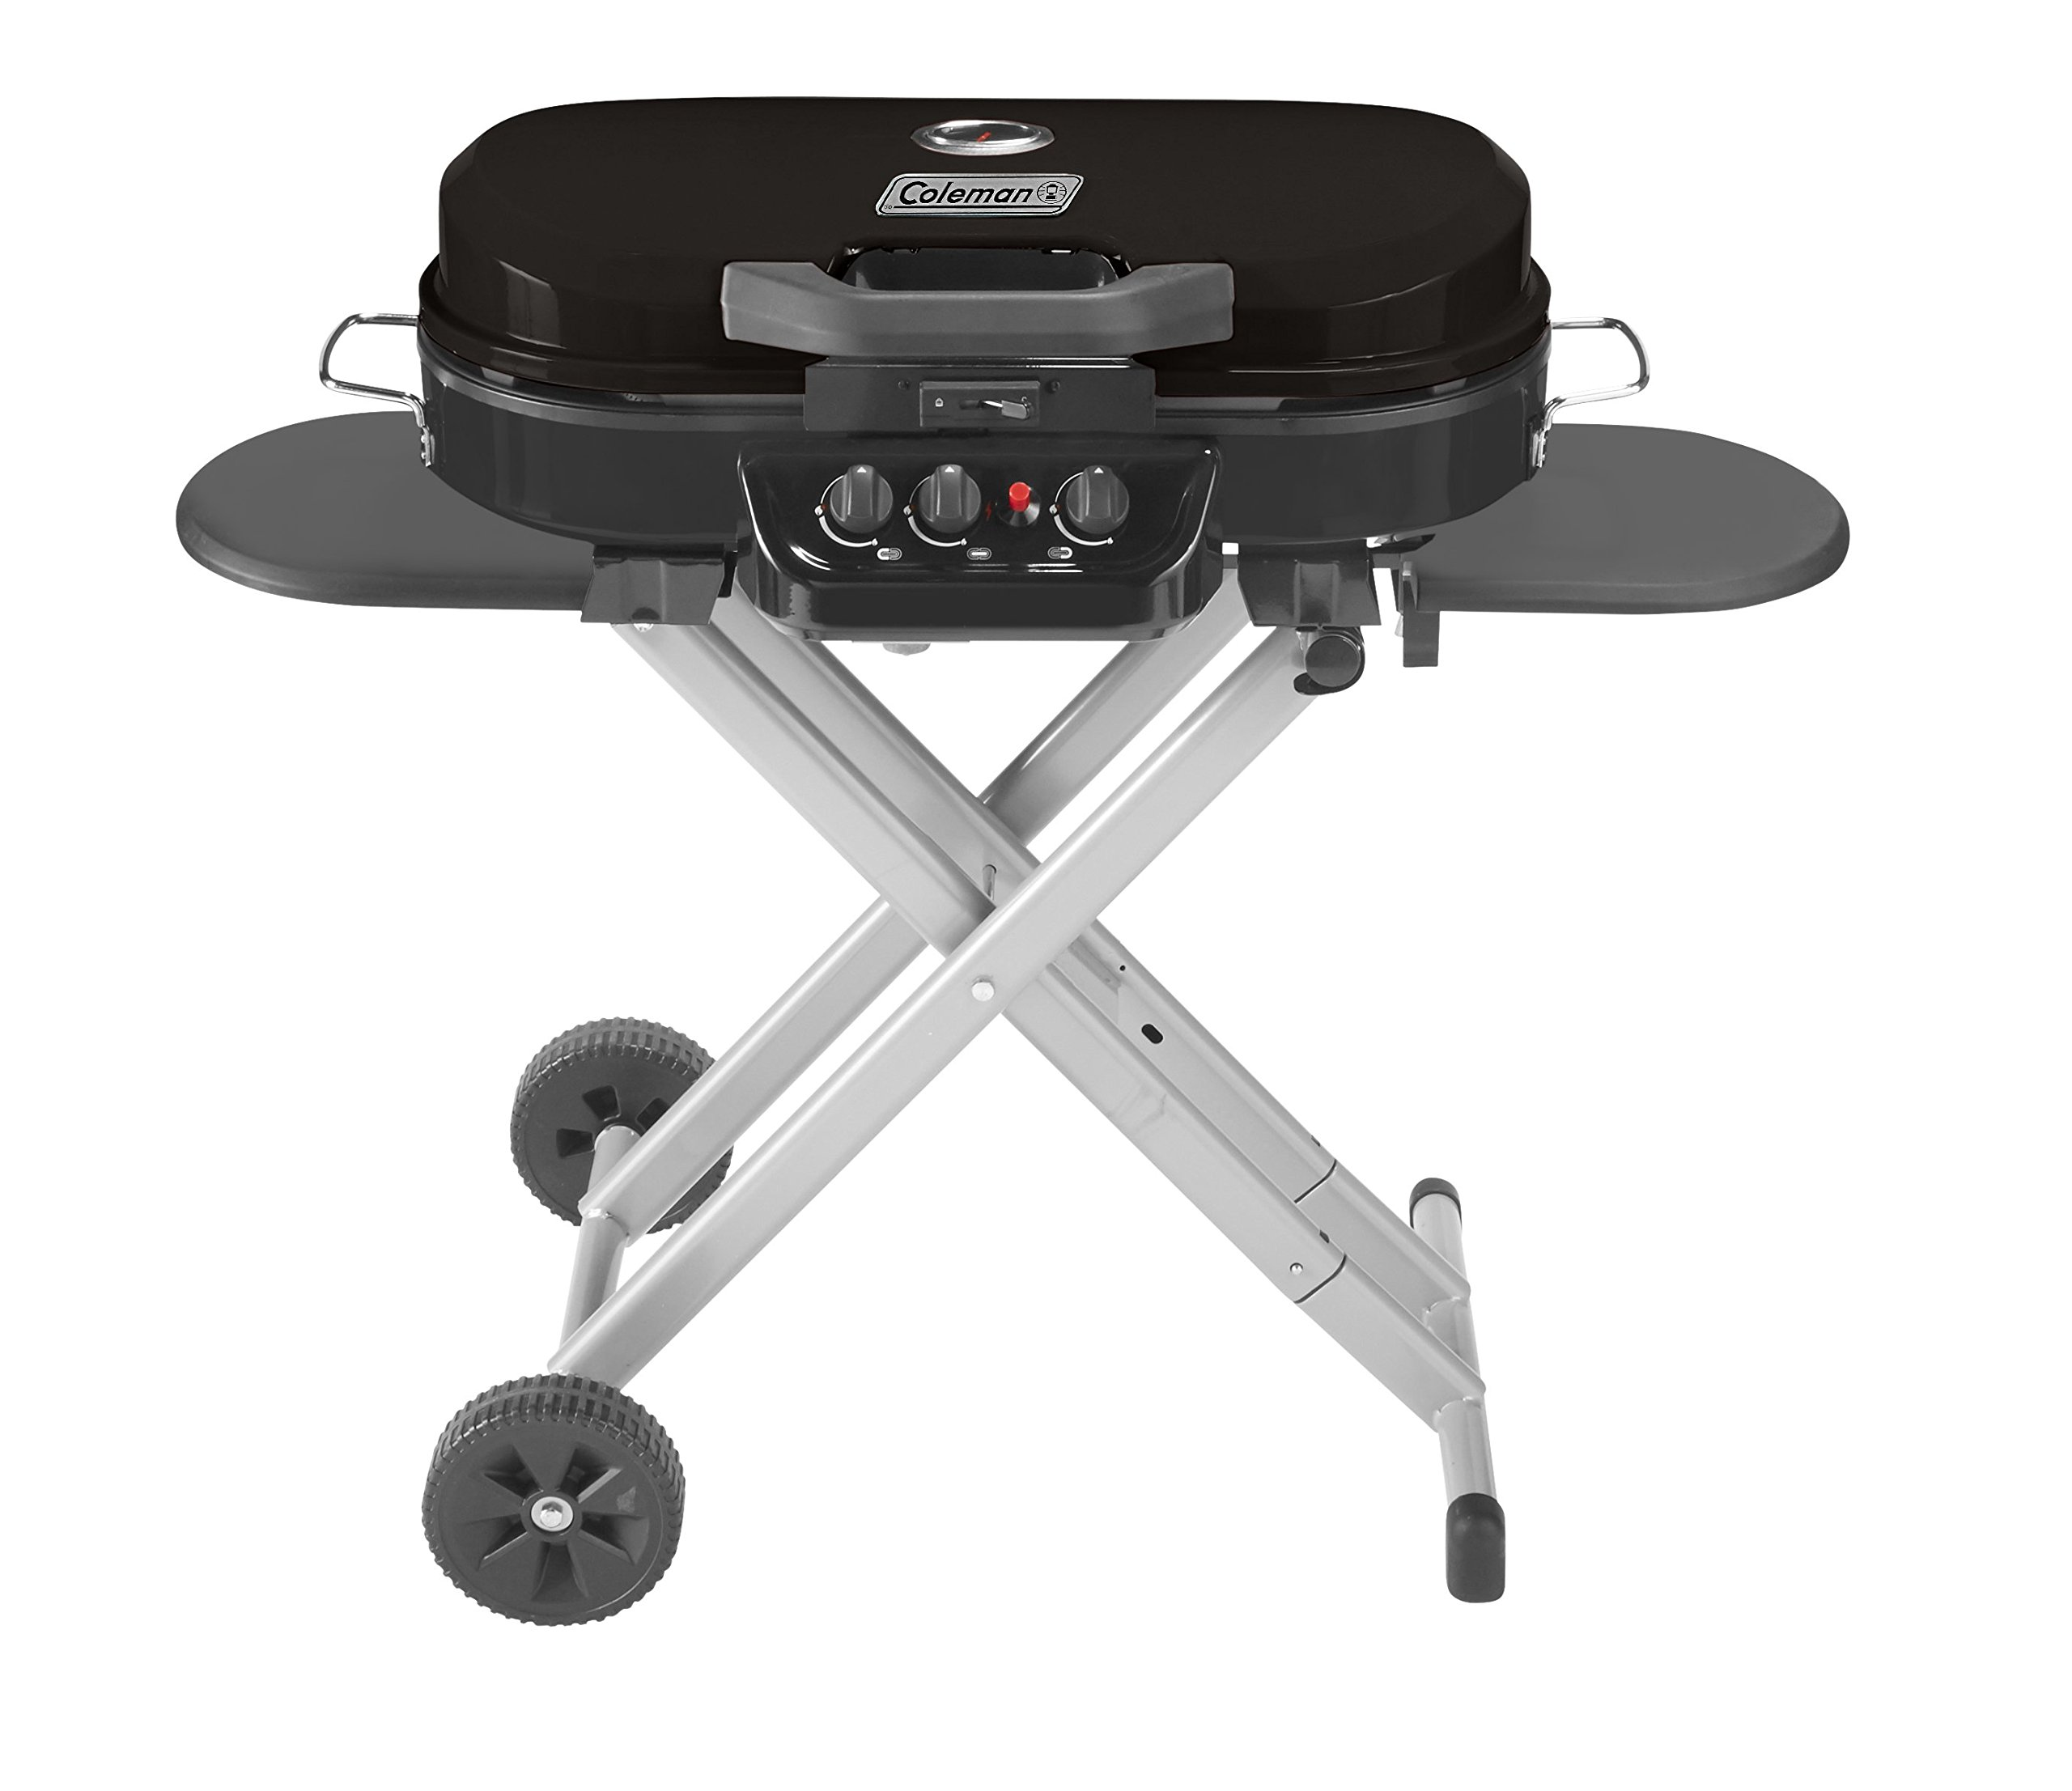 Coleman Gas Grill | Portable Propane Grill for Camping & Tailgating | 285 RoadTrip Standup Grill by Coleman